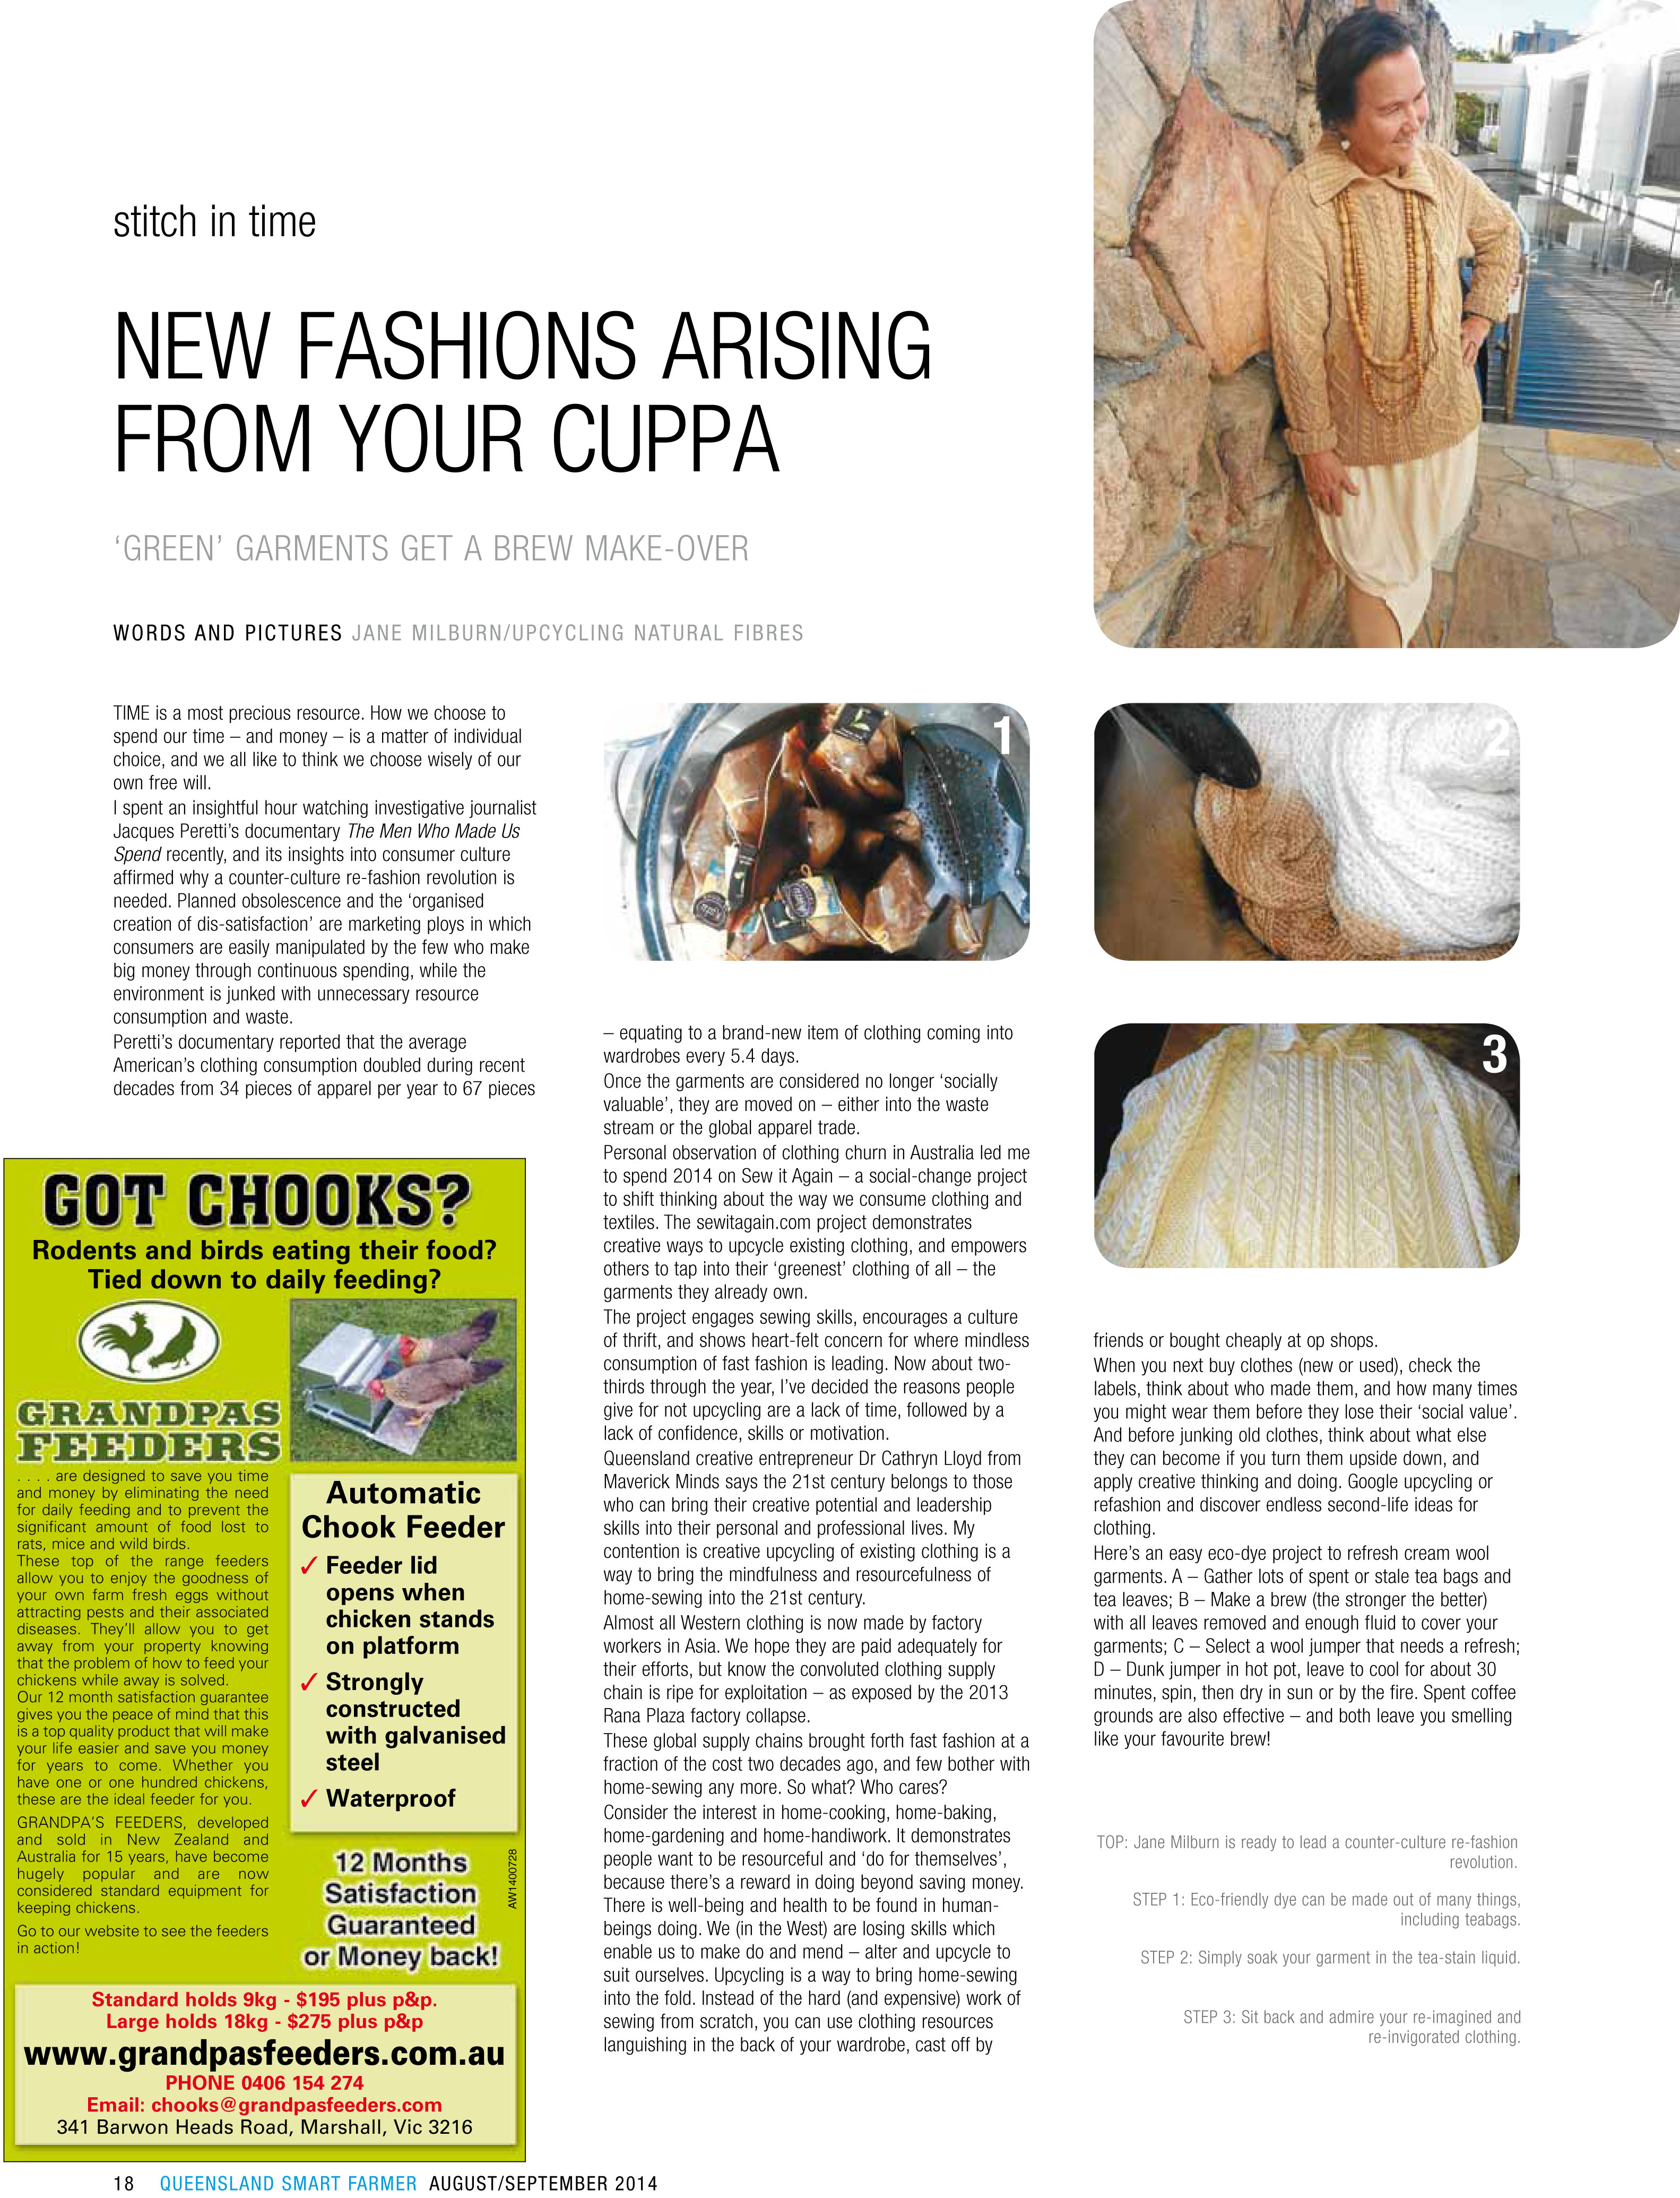 Stitch in Time column by Jane Milburn, Smart Farmer magazine August 2014